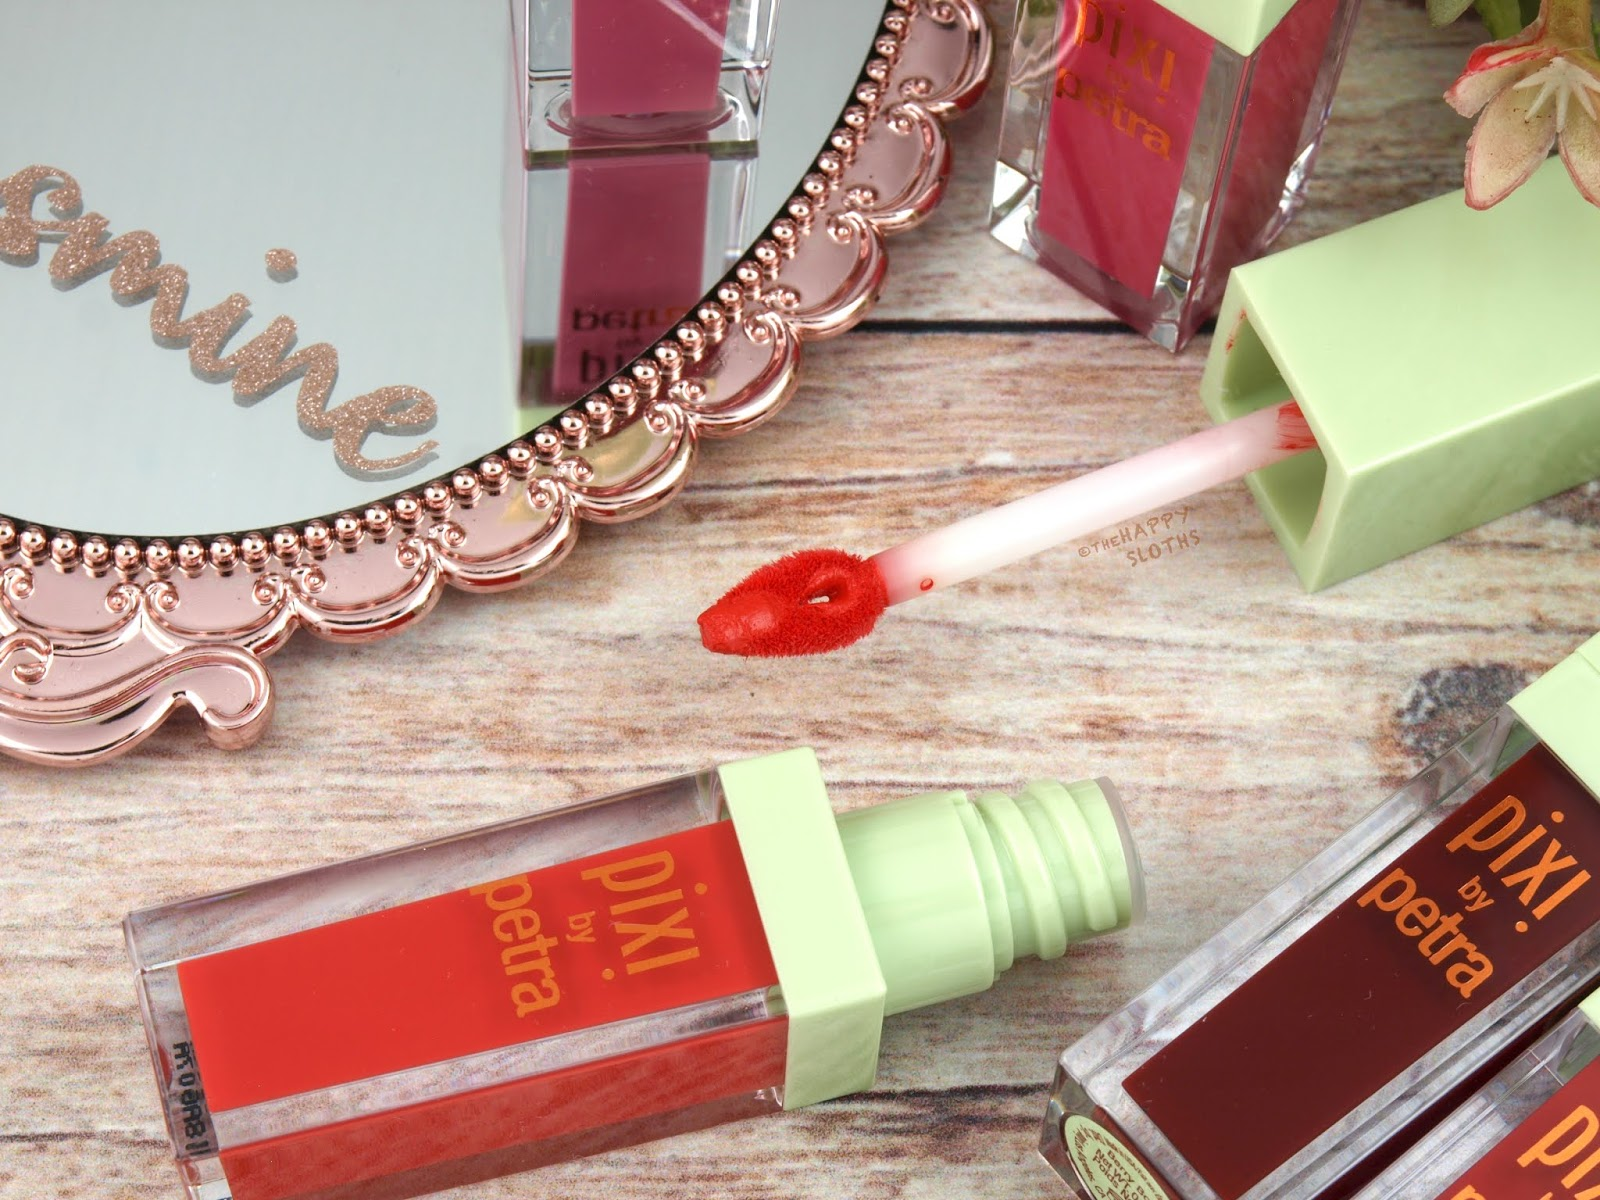 Pixi | *NEW SHADES* MatteLast Liquid Lip: Review and Swatches